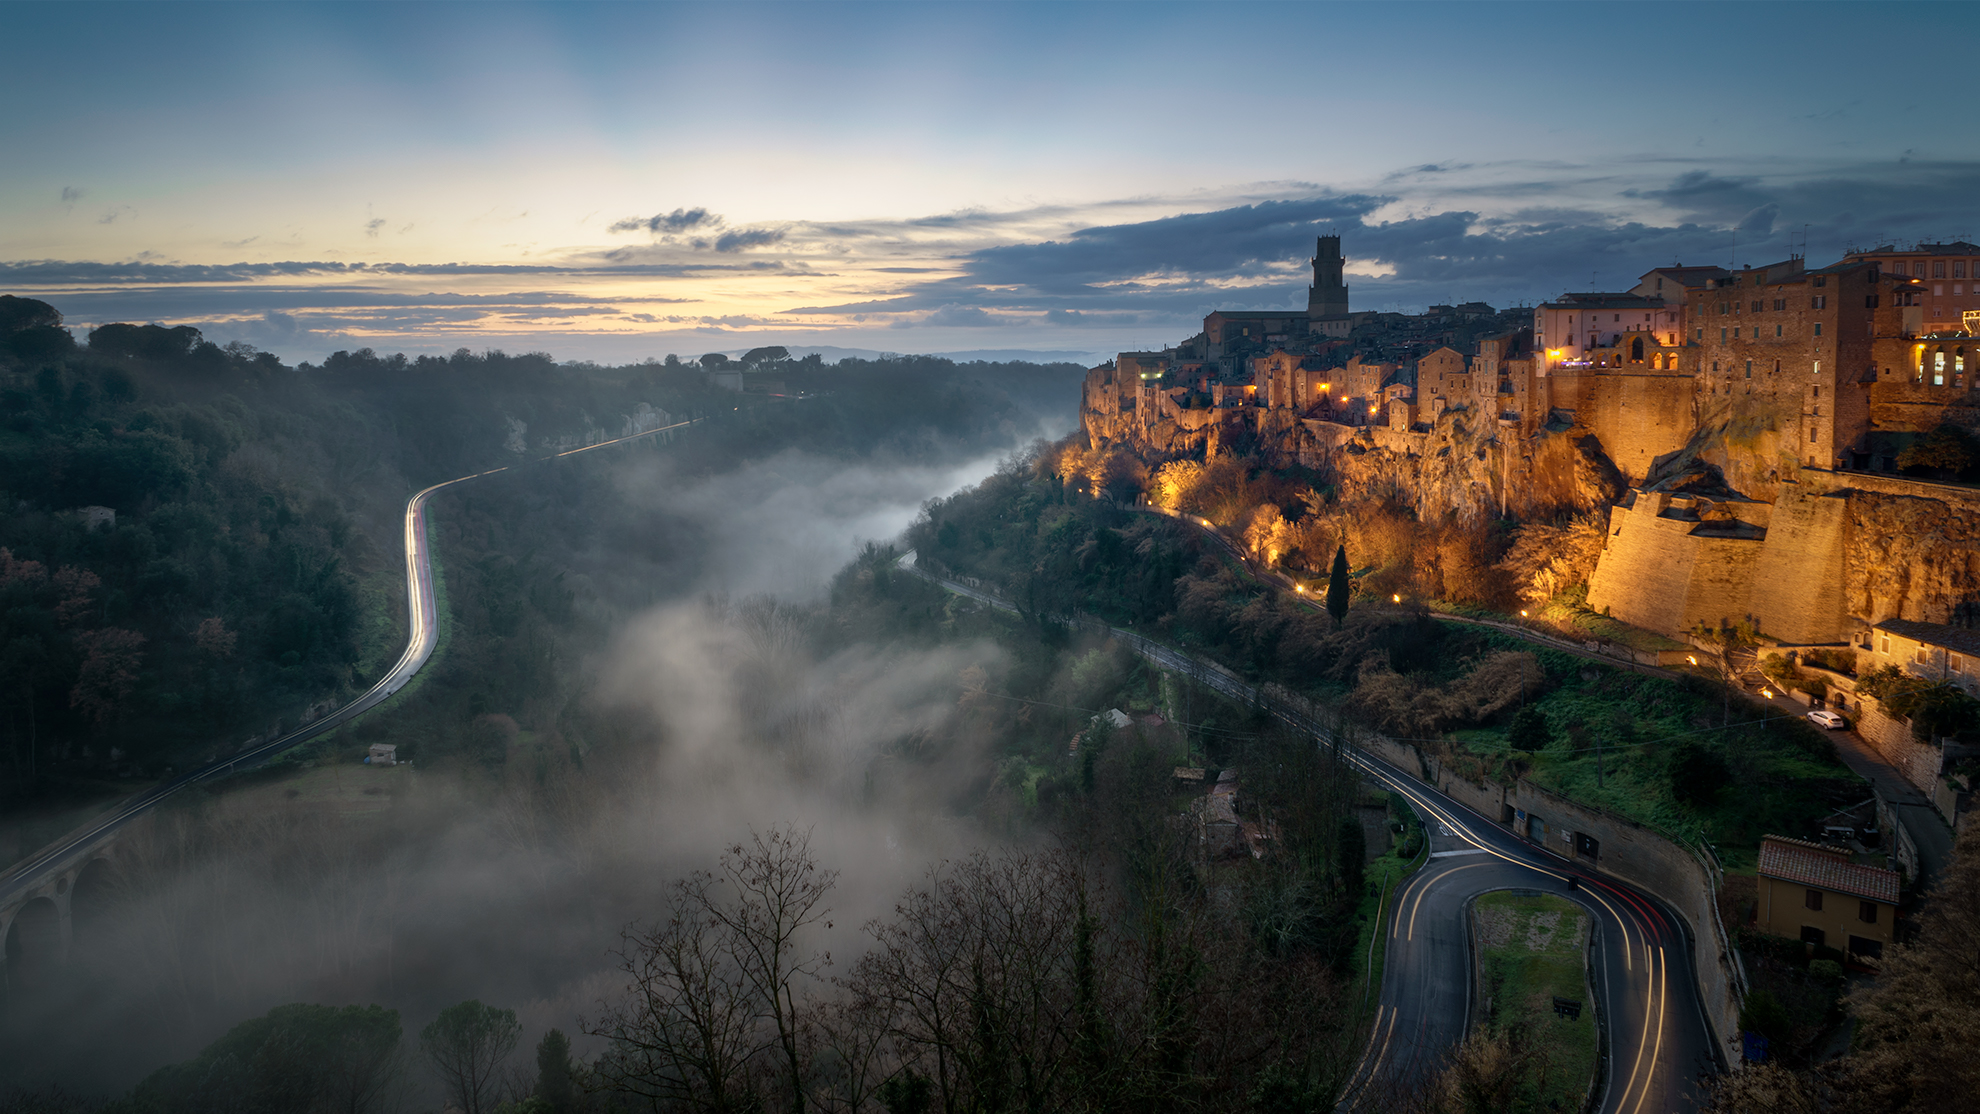 My vision of Pitigliano at sunset ......